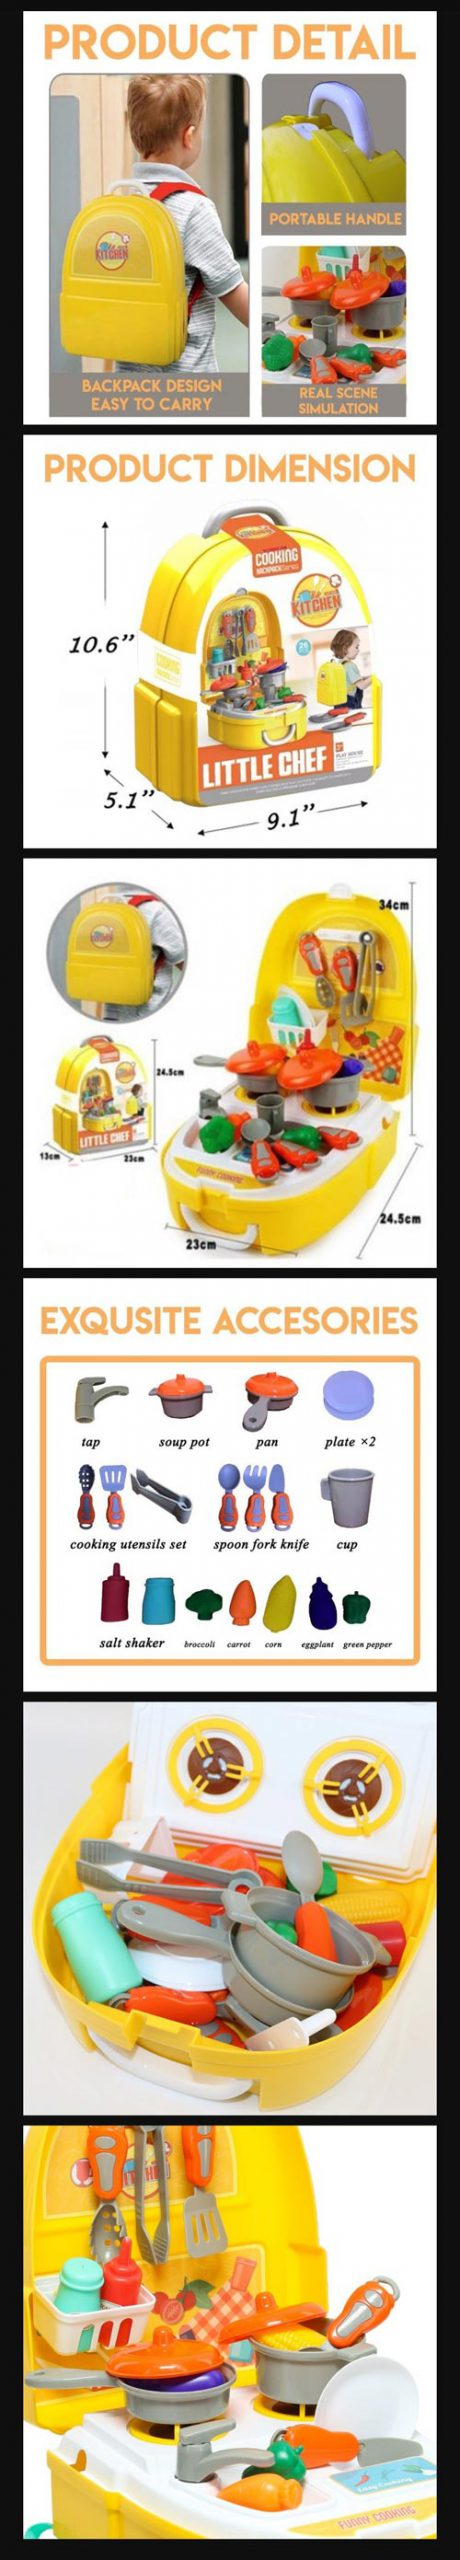 Little Chef Backpack Toy For Kids